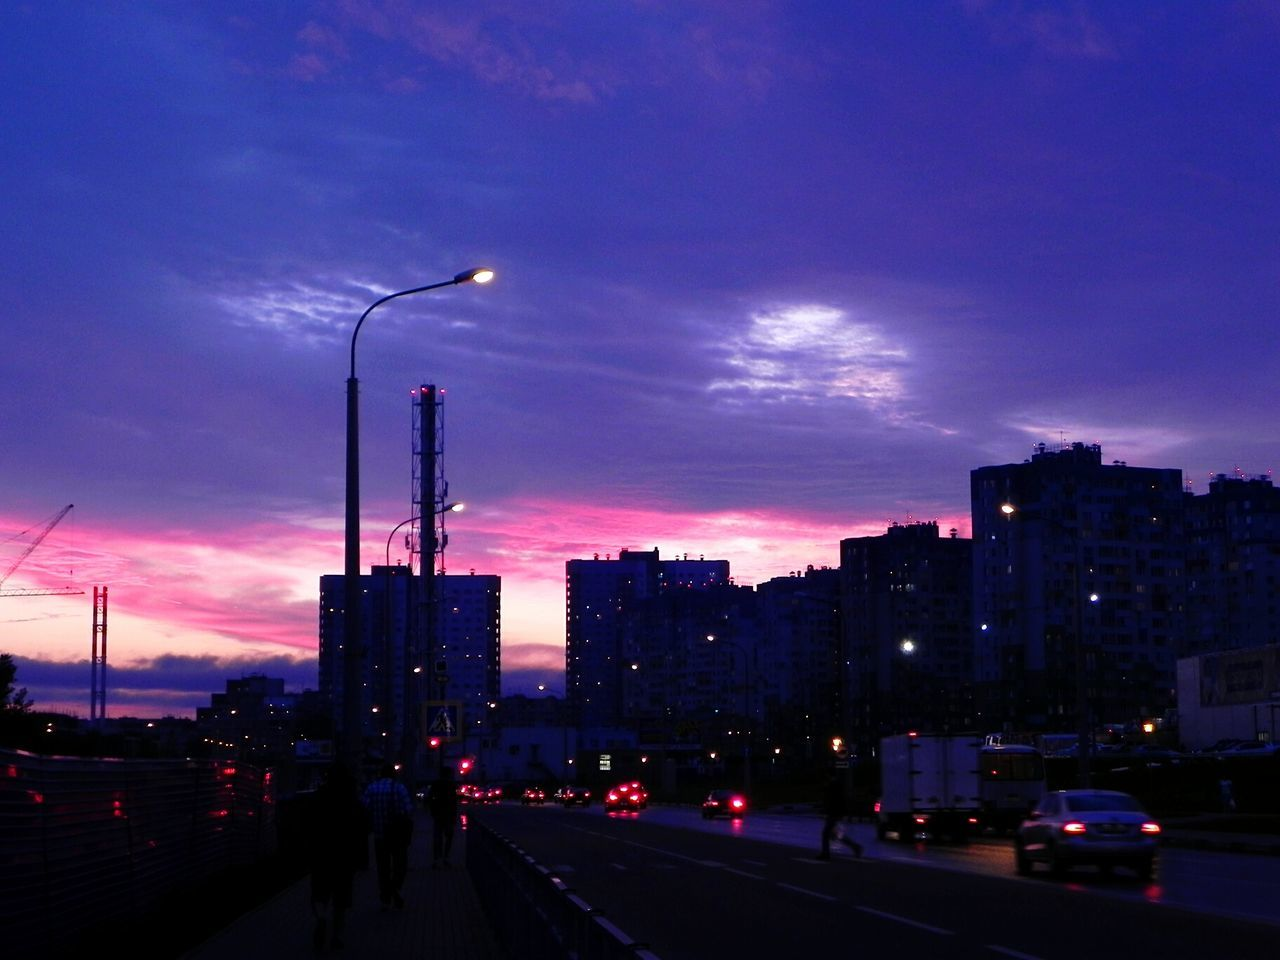 illuminated, architecture, city, sky, built structure, building exterior, road, street, transportation, car, street light, sunset, night, skyscraper, outdoors, modern, cityscape, no people